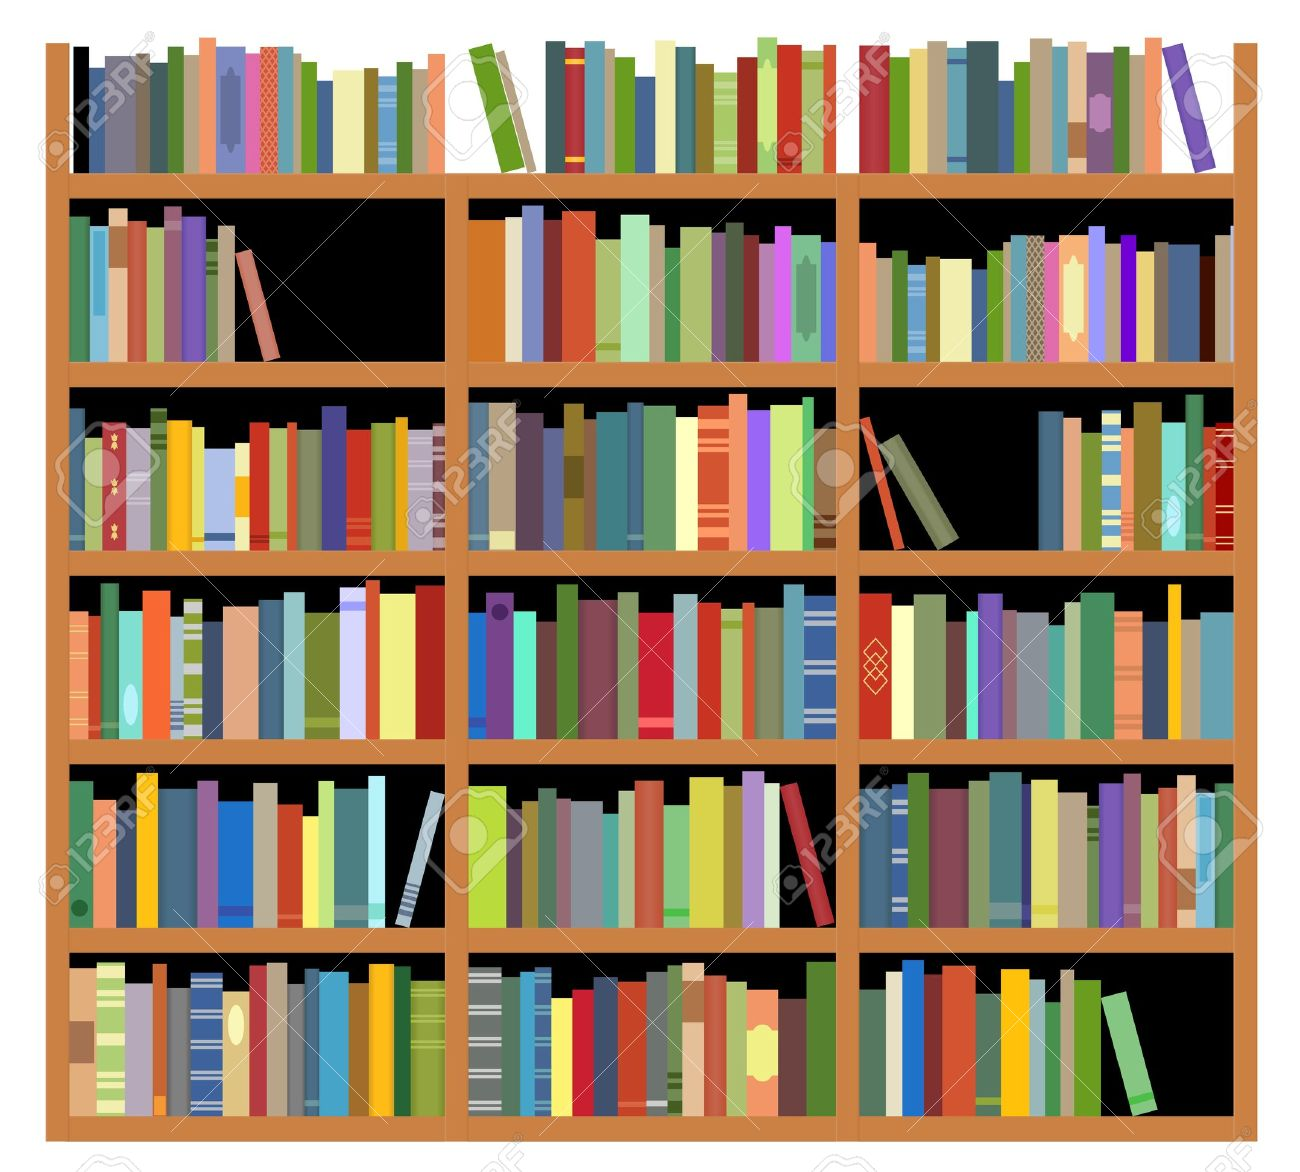 Bookshelf With Books Isolated On White Background For Education Or Interior Design Stock Vector